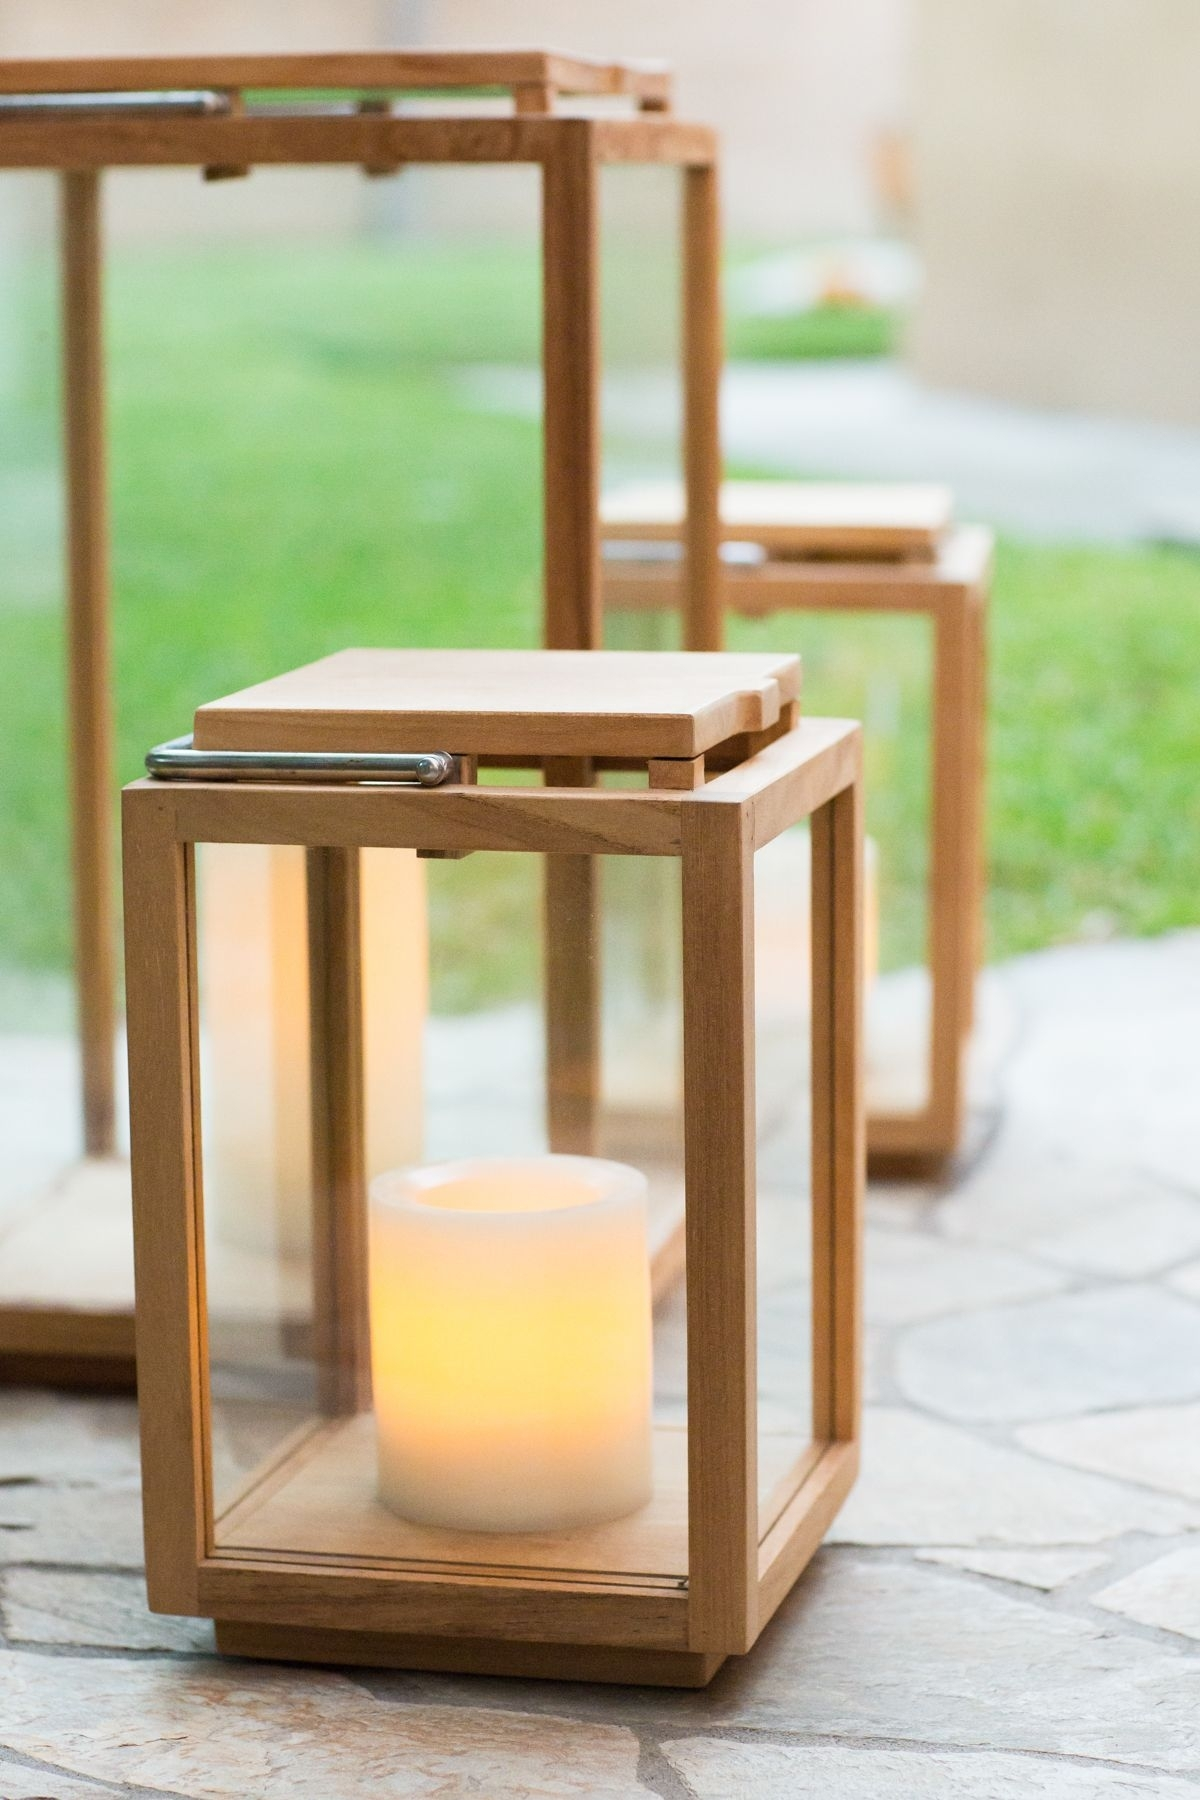 Outdoor Patio Teak Lanterns // Outdoor Lighting // Patio // Outdoor Pertaining To Outdoor Teak Lanterns (View 9 of 20)